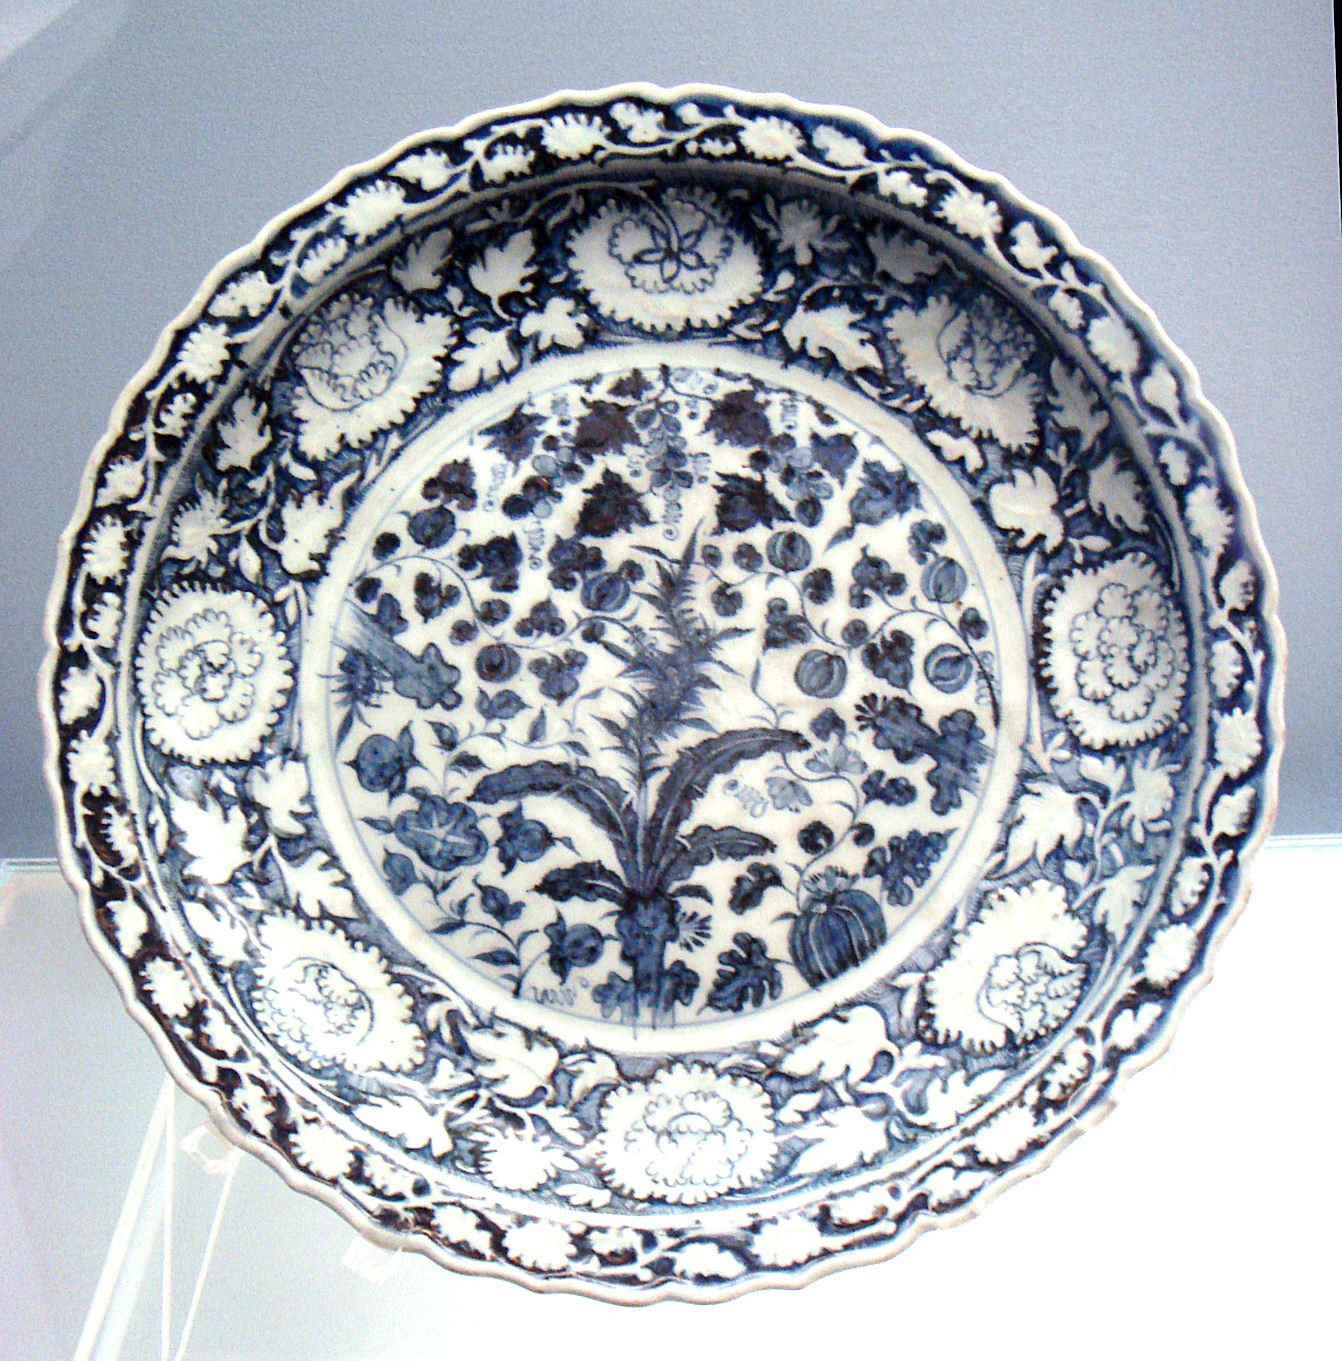 Blue And White Plates Amusing With Blue and White Porcelain Plate Image